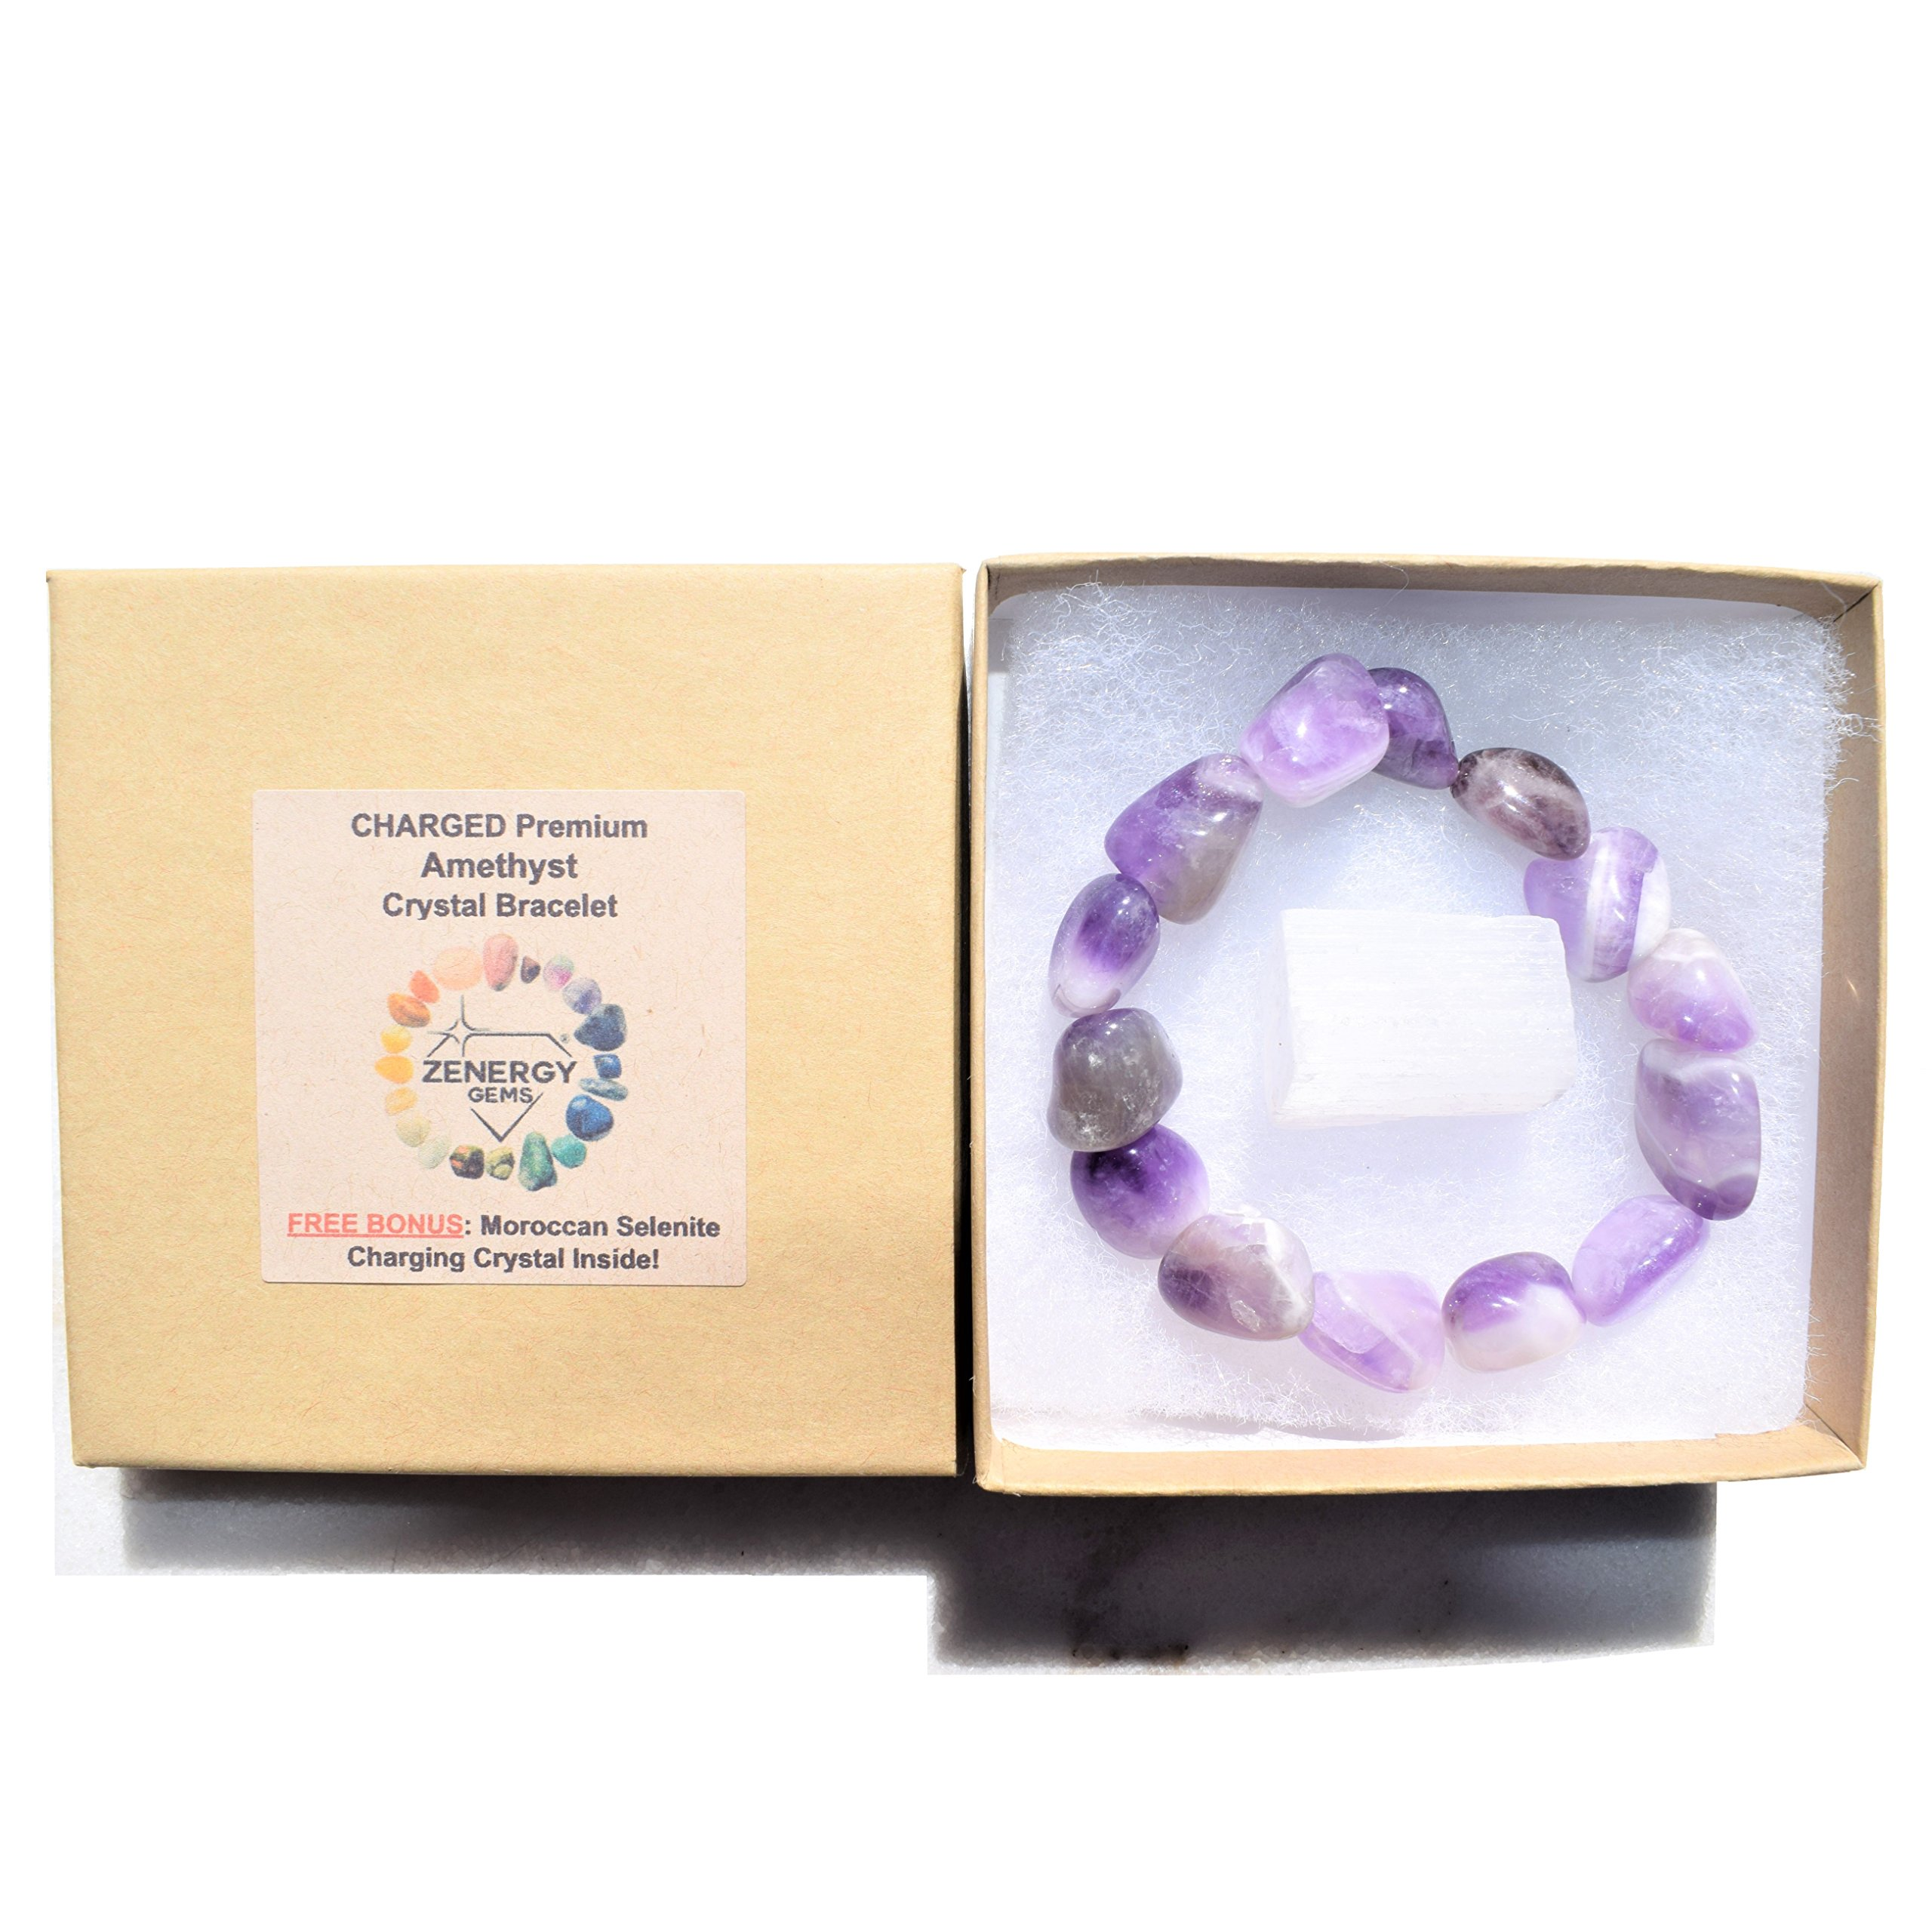 Charged Amethyst Crystal Bracelet Tumble Polished Stretchy (Open & HEAL The Heart Chakra - Soothe Hurt, Loneliness & Anxiety) [Reiki] by ZENERGY GEMS by Zenergy Gems